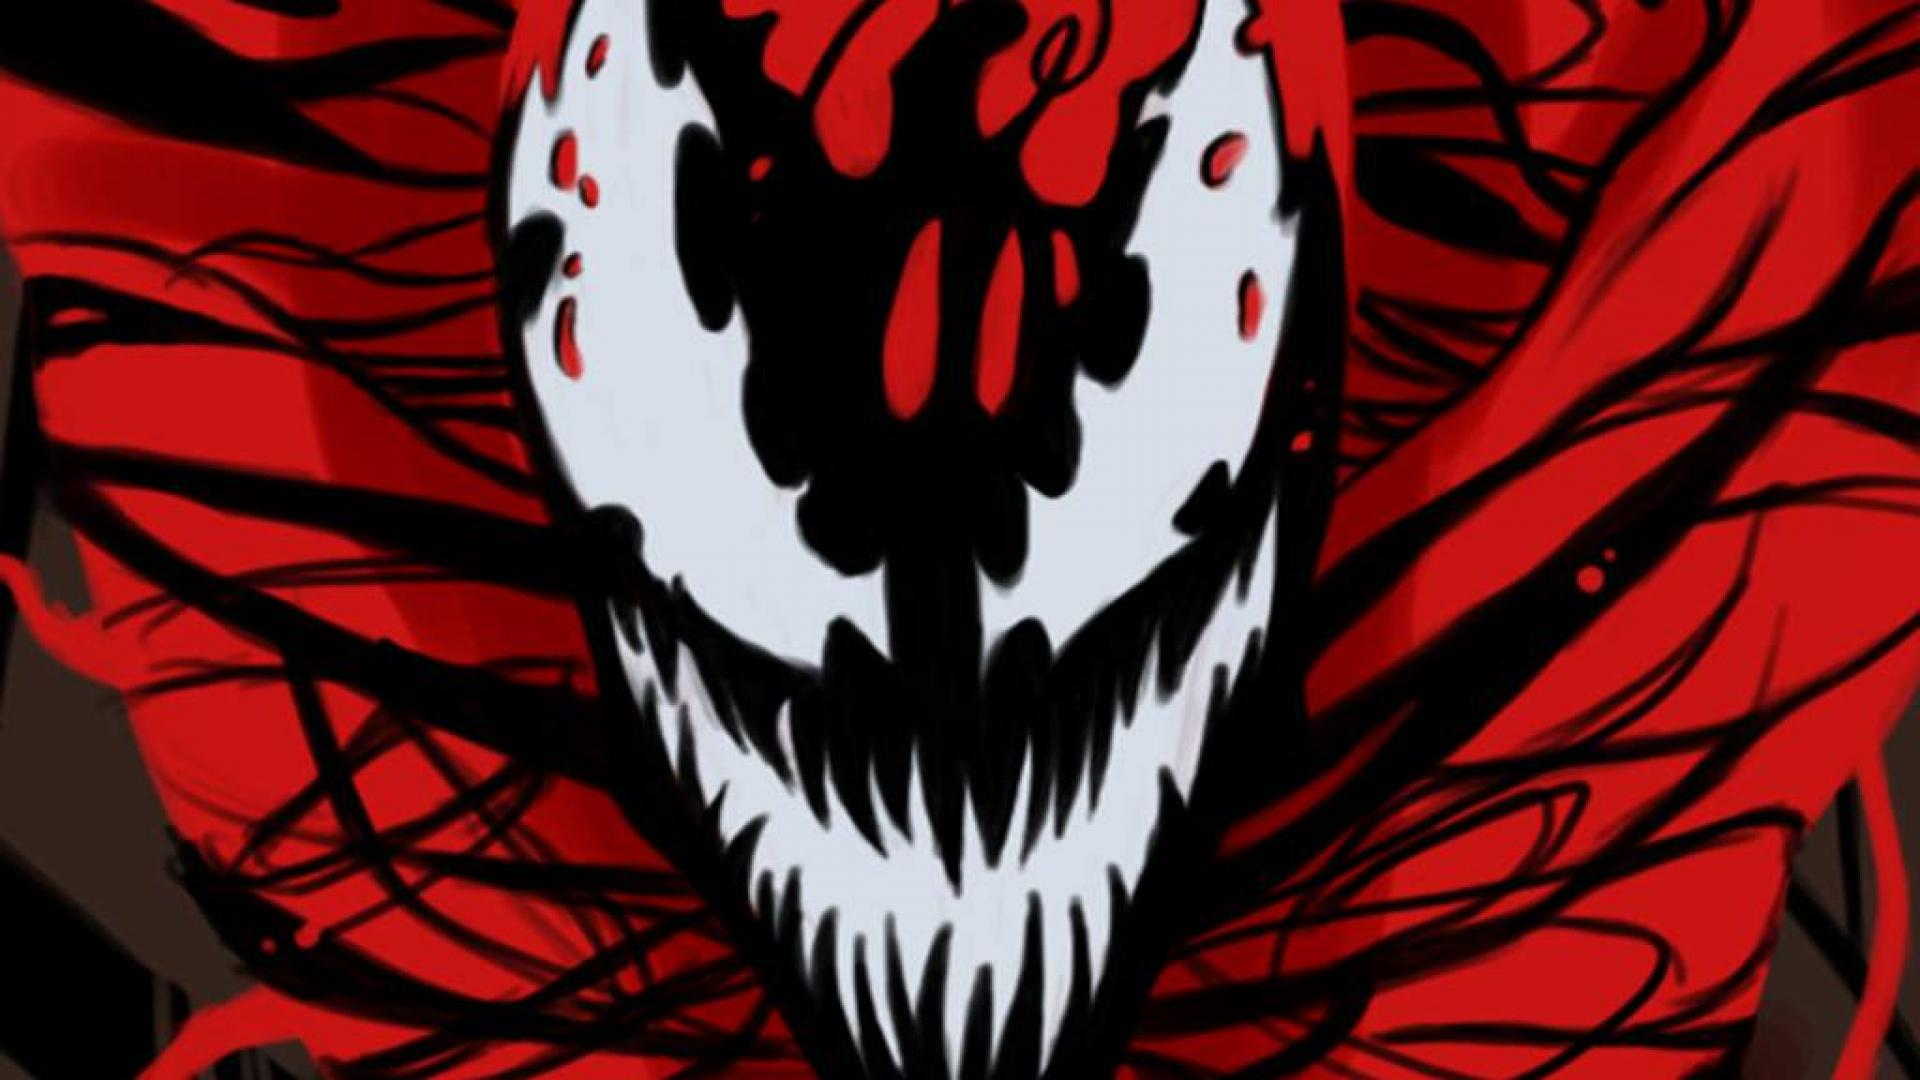 carnage wallpaper hd wallpapersafari